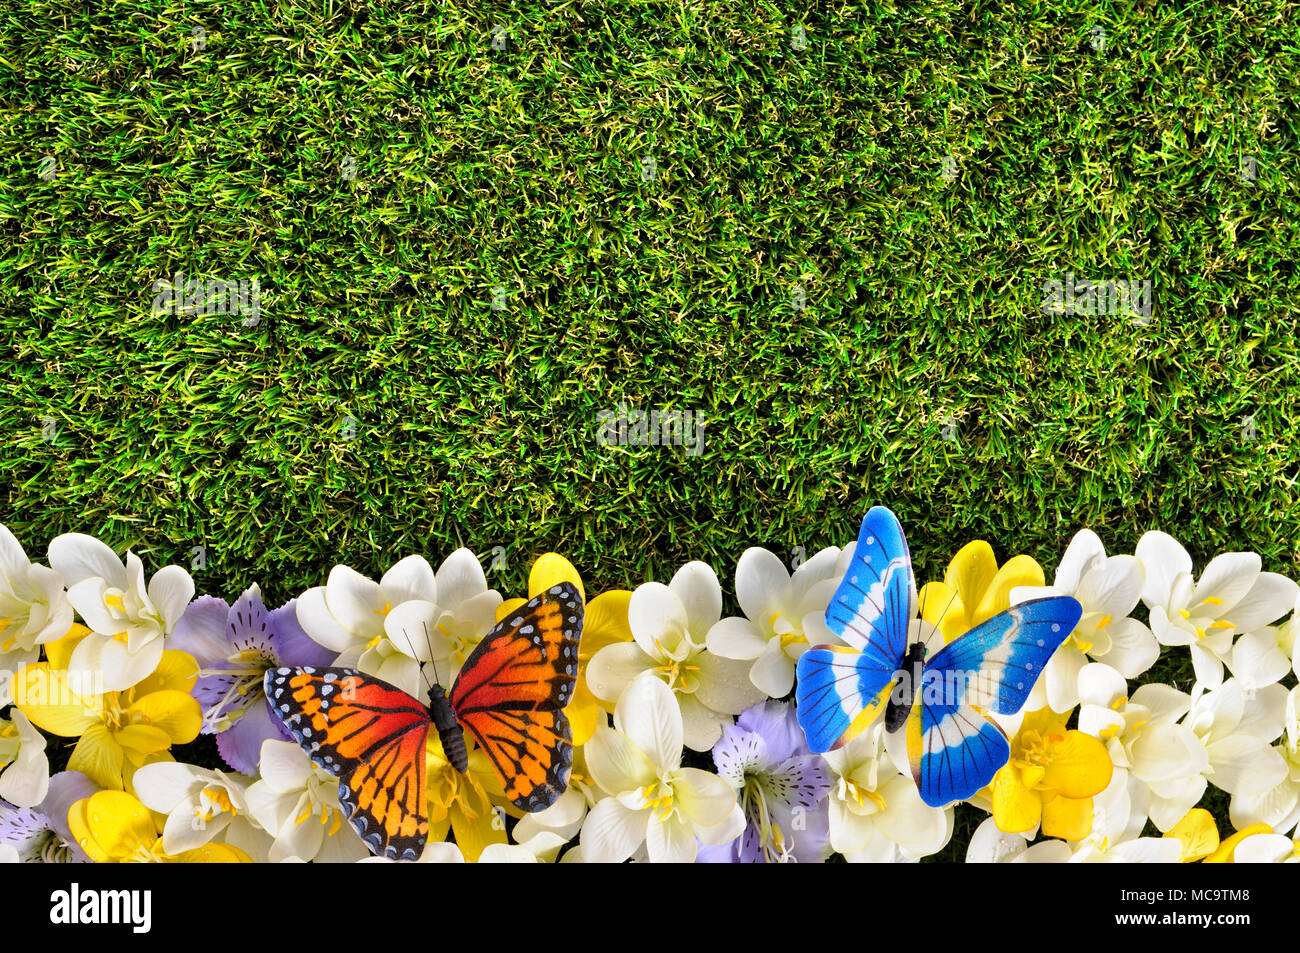 Spring Flower Border Background With Butterflies Grass Copy Space